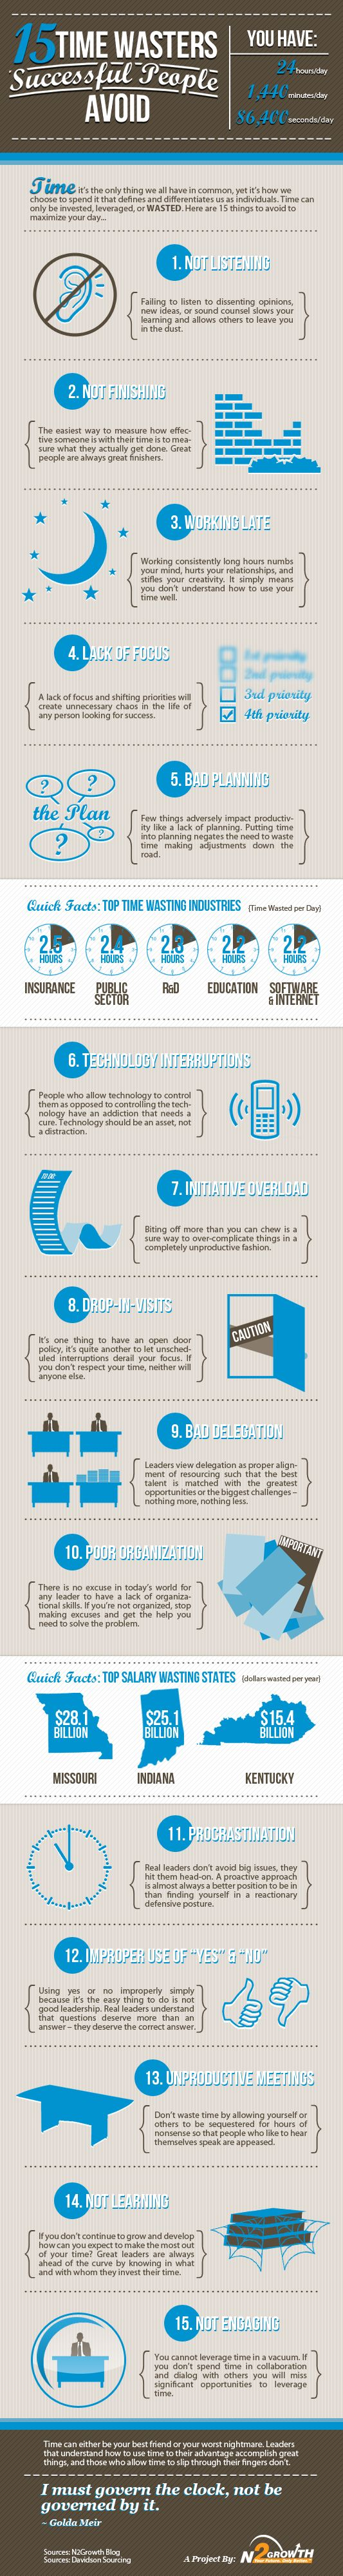 Time Wasters To Avoid Infographic